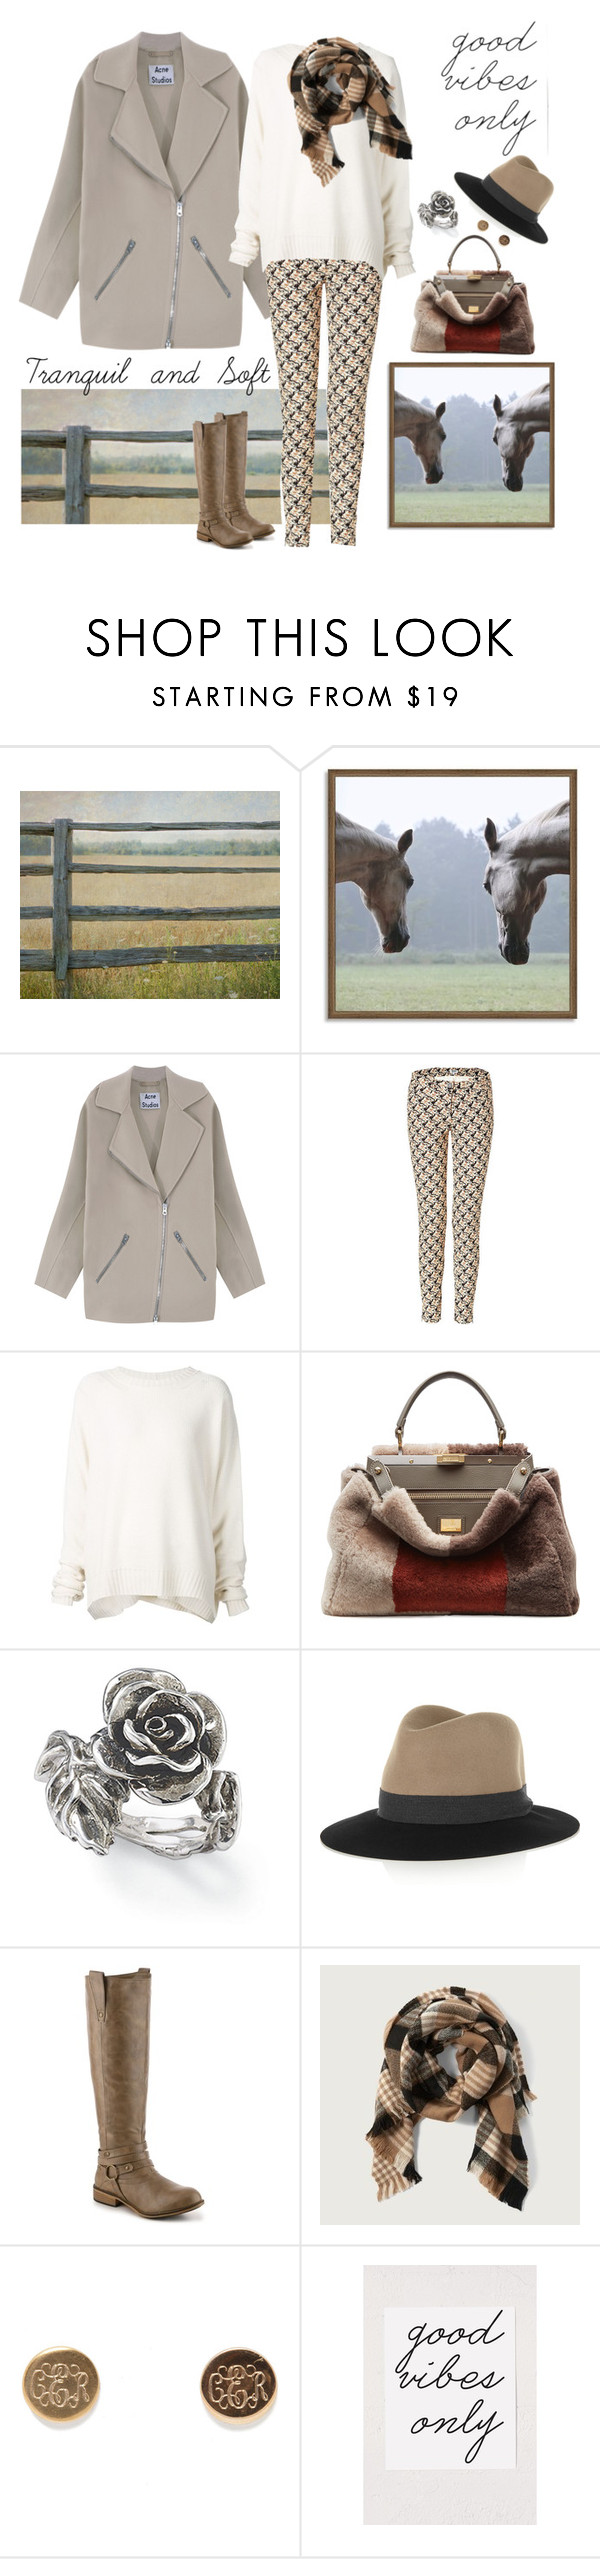 """""""Tranquility"""" by jadta ❤ liked on Polyvore featuring West Elm, Acne Studios, Kenzo, URBAN ZEN, Fendi, Natures Jewelry, rag & bone, Journee Collection and Abercrombie & Fitch"""